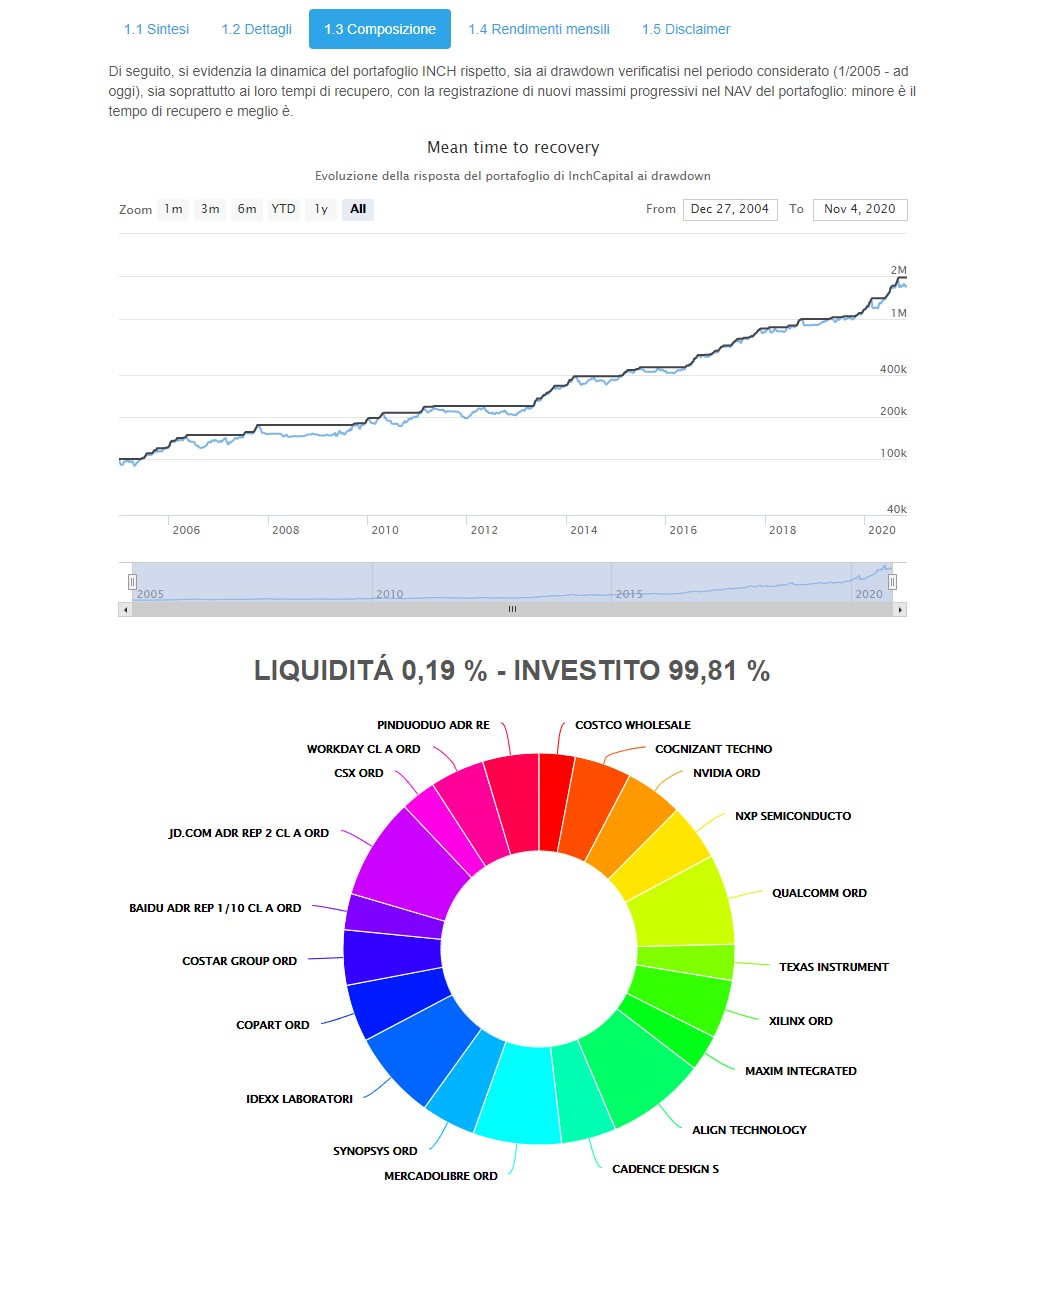 The image highlights InchCapital Automatic Portfolio Builder - INCH Nasdaq100 components last updated on Saturday 31nd October 2020 - automated weekly rebalancing